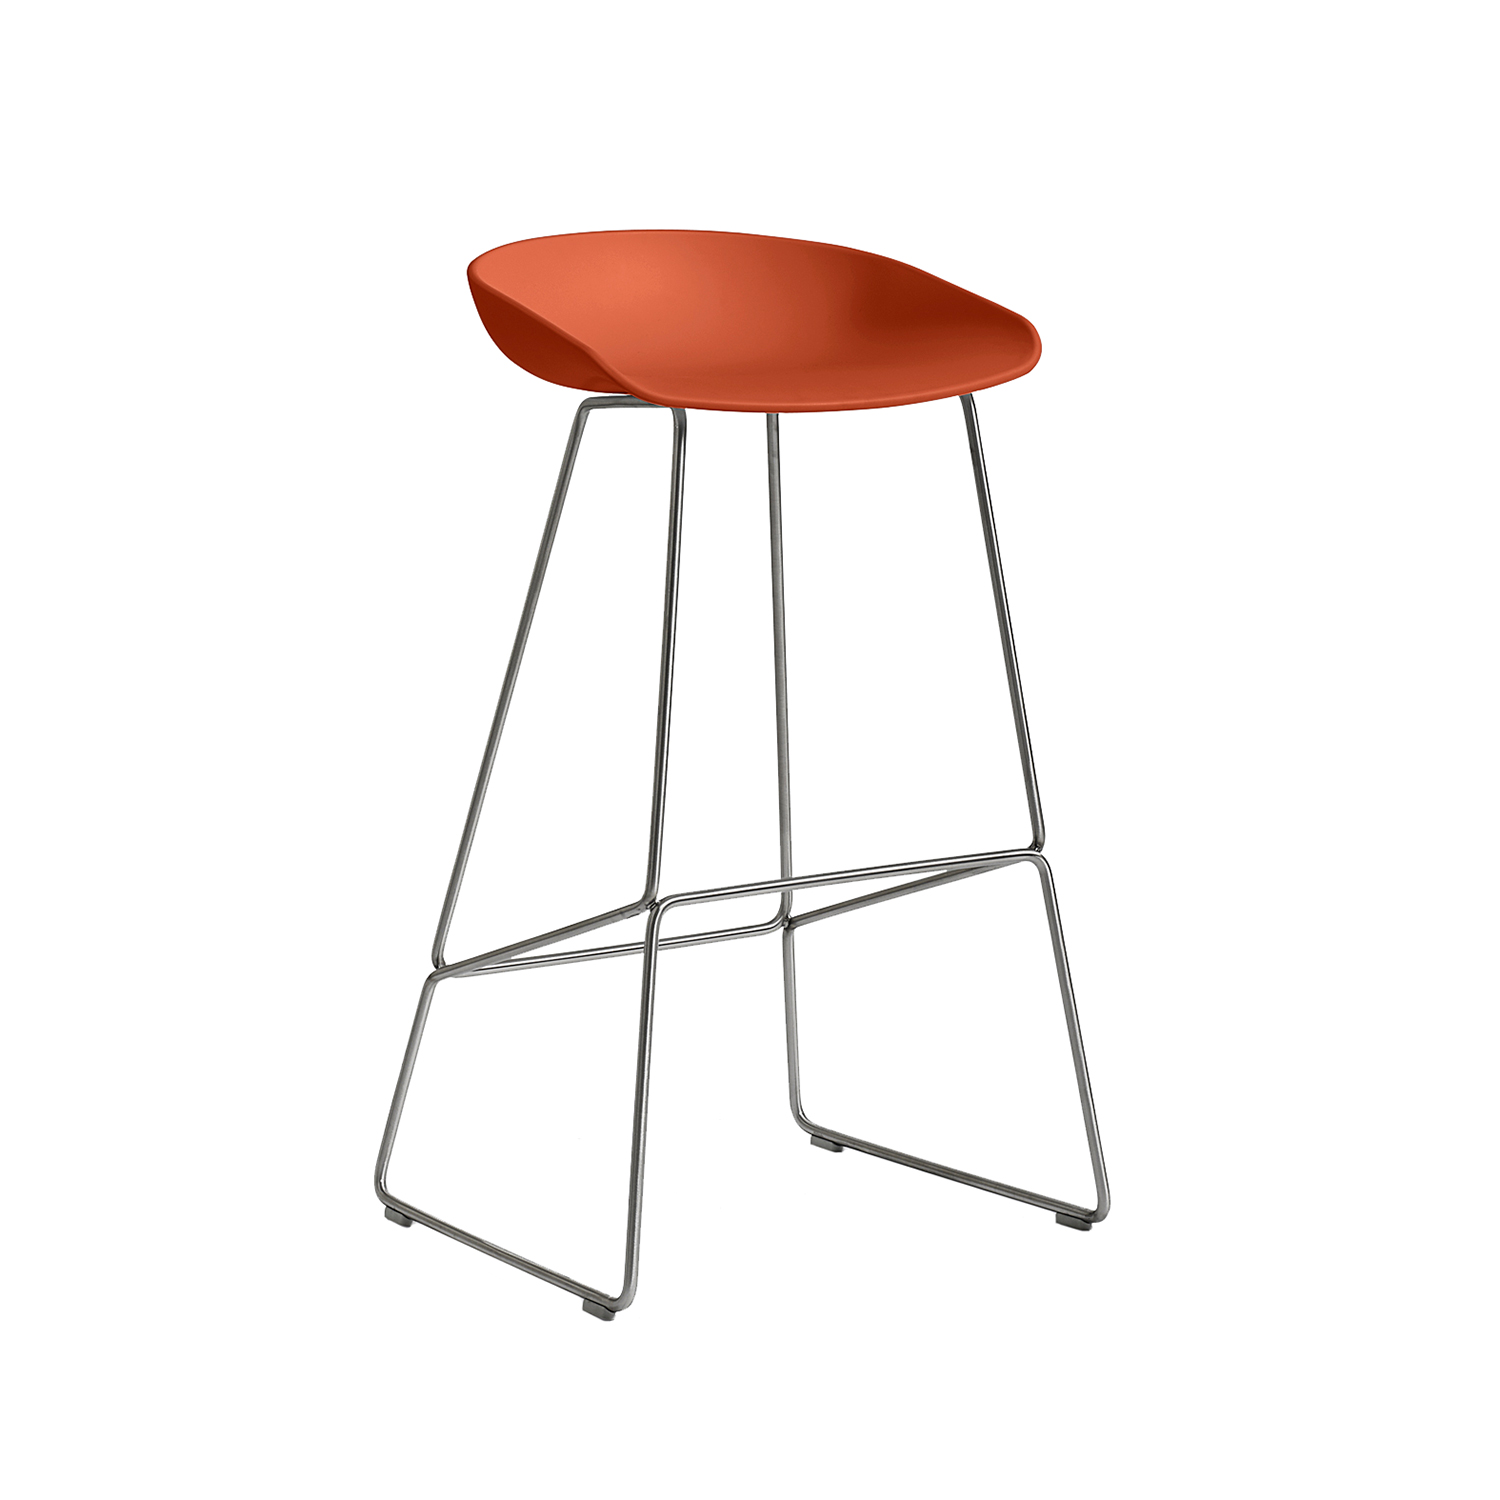 Hay-About A Stool 38 Barstol H75, Beton/Rustfrit